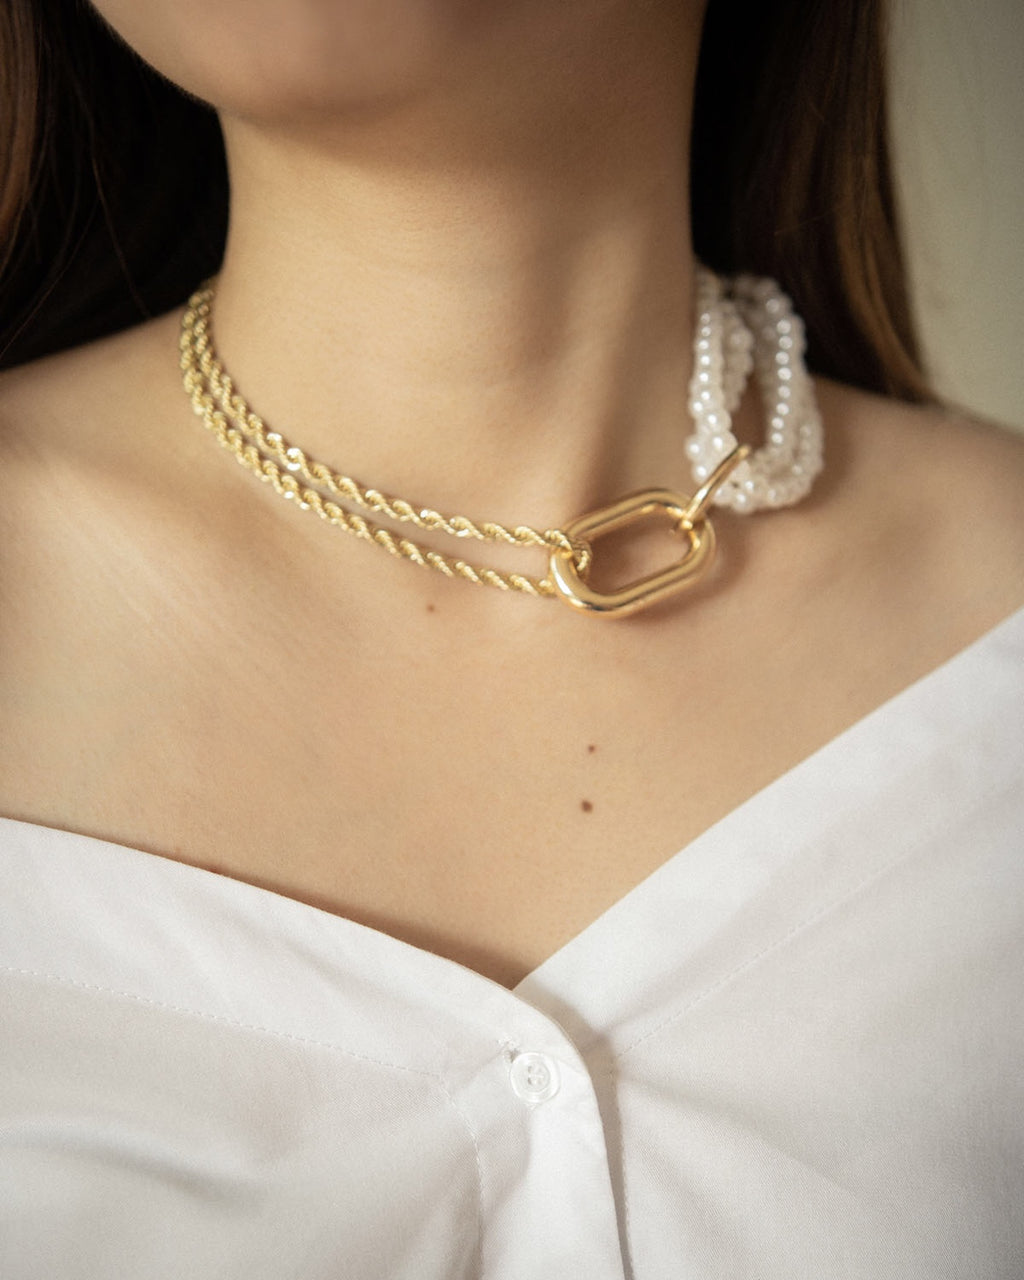 Unique statement necklace with braided gold chains and a cluster of faux pearls - Isabeau necklace by The Hexad